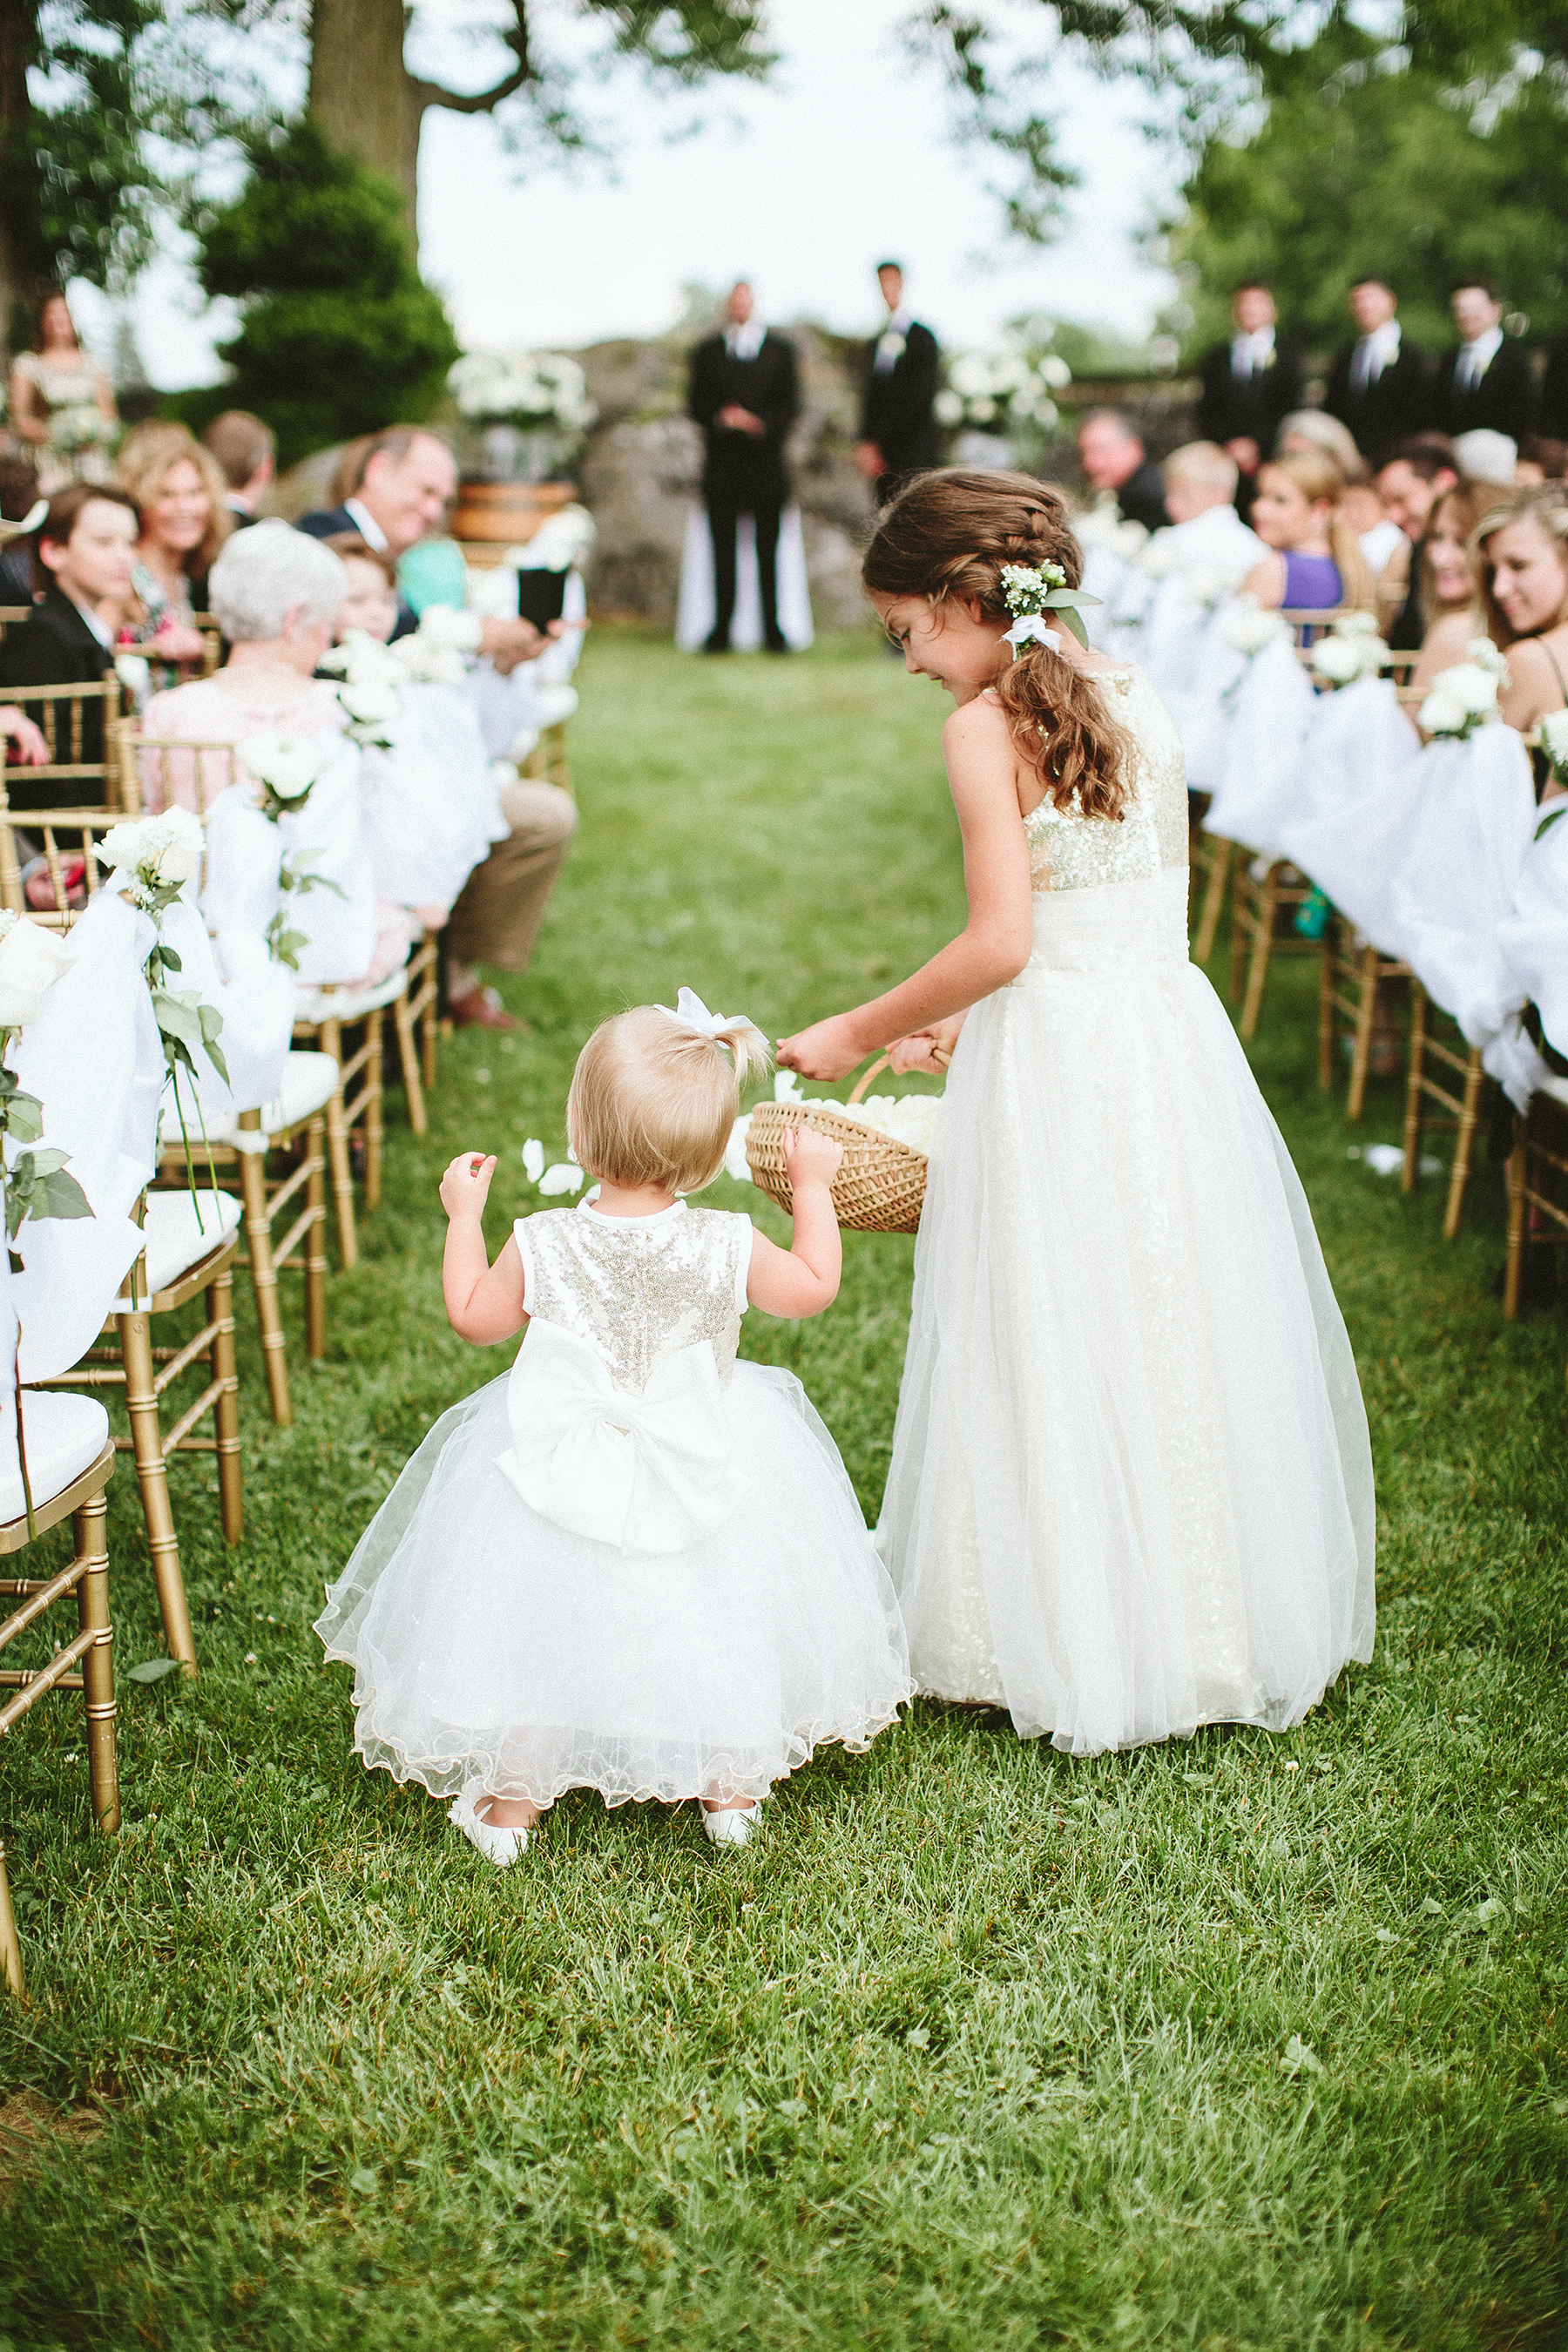 Read This Before Asking Your Flower Girl To Toss Petals Down The